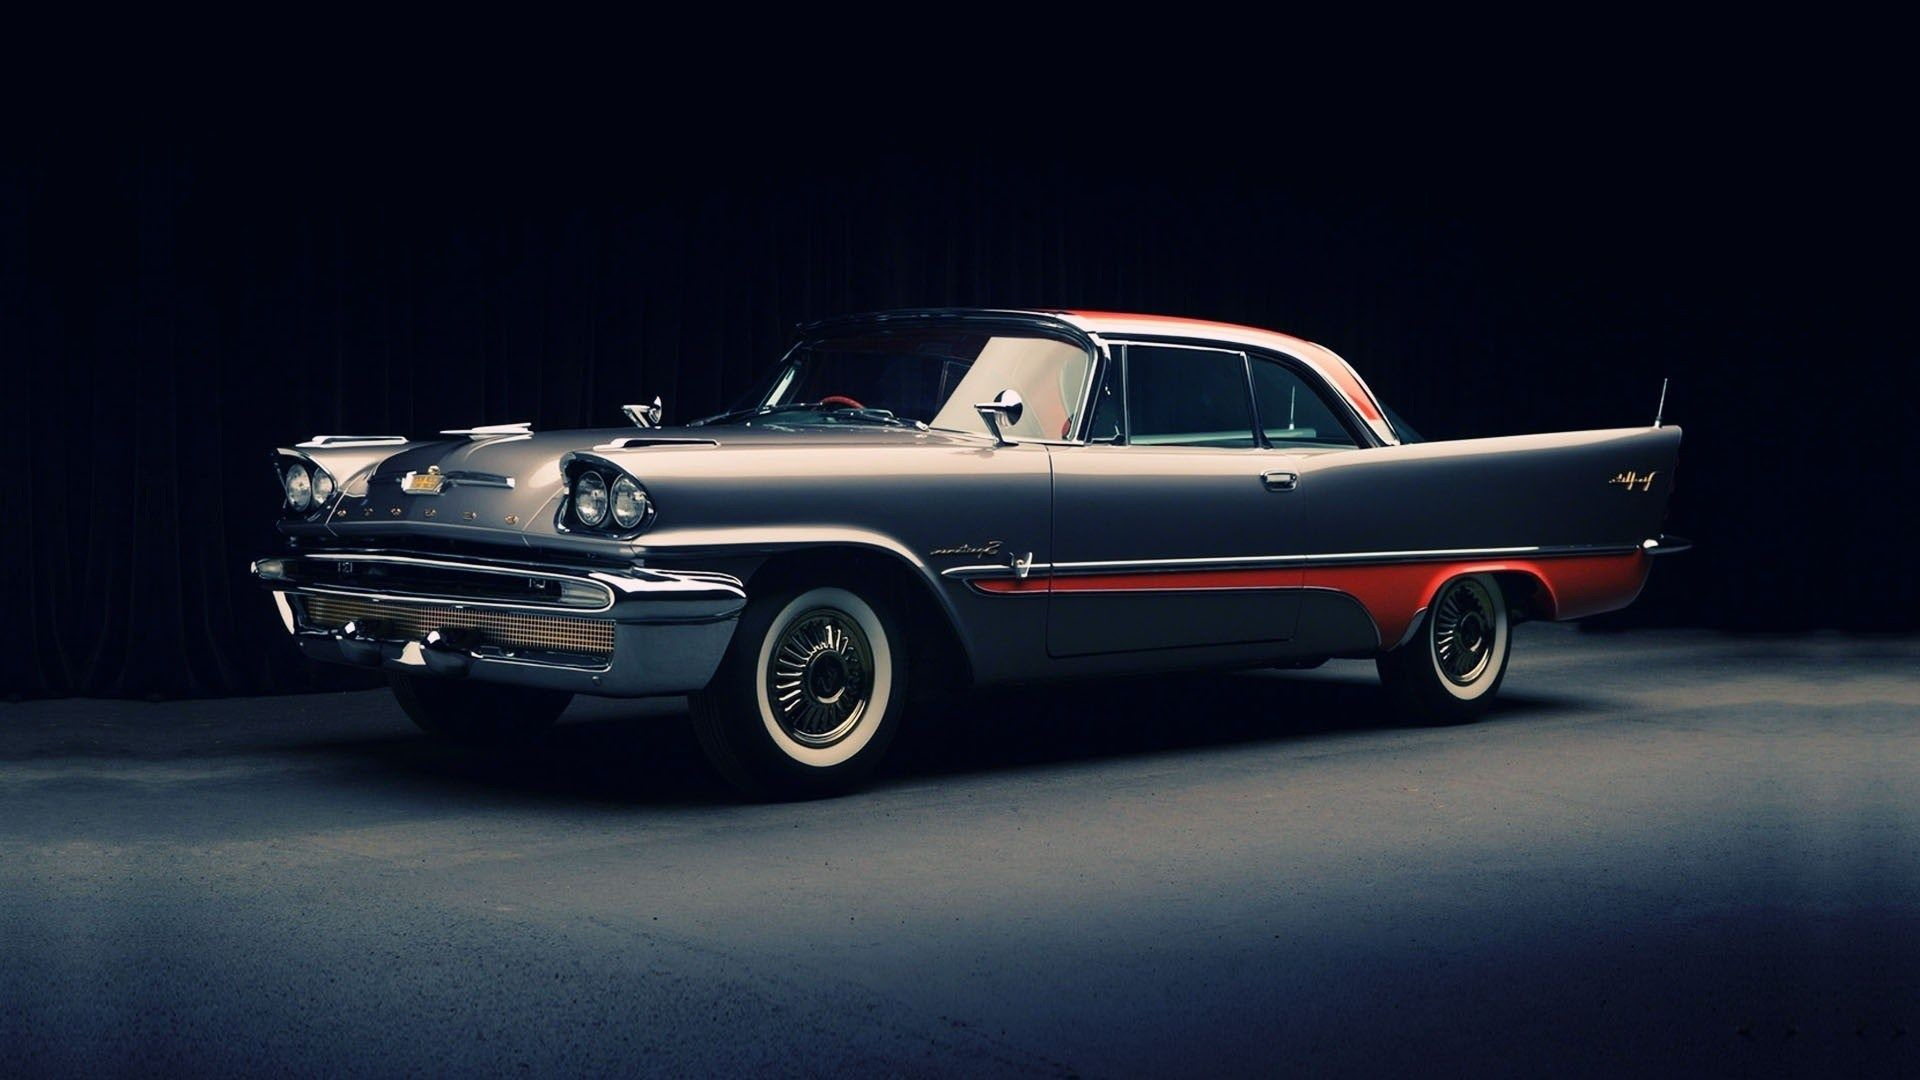 Res: 1920x1080, HD Classic Car Wallpapers and Photos,  – By Elroy Dane for PC &  Mac, Tablet, Laptop, ...